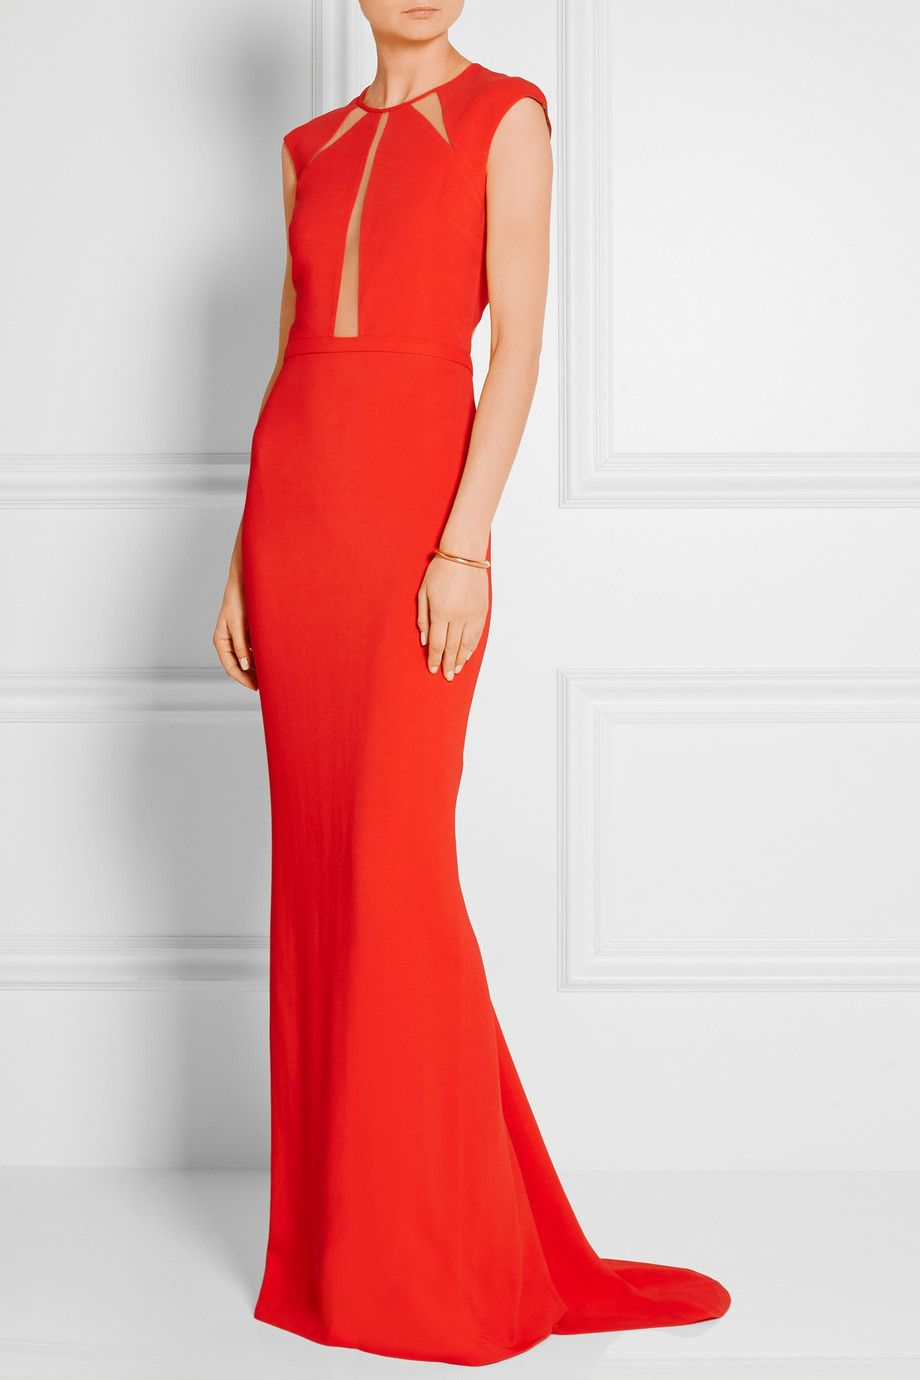 Michael Kors Collection   Tulle-paneled crepe gown   NET-A-PORTER ...